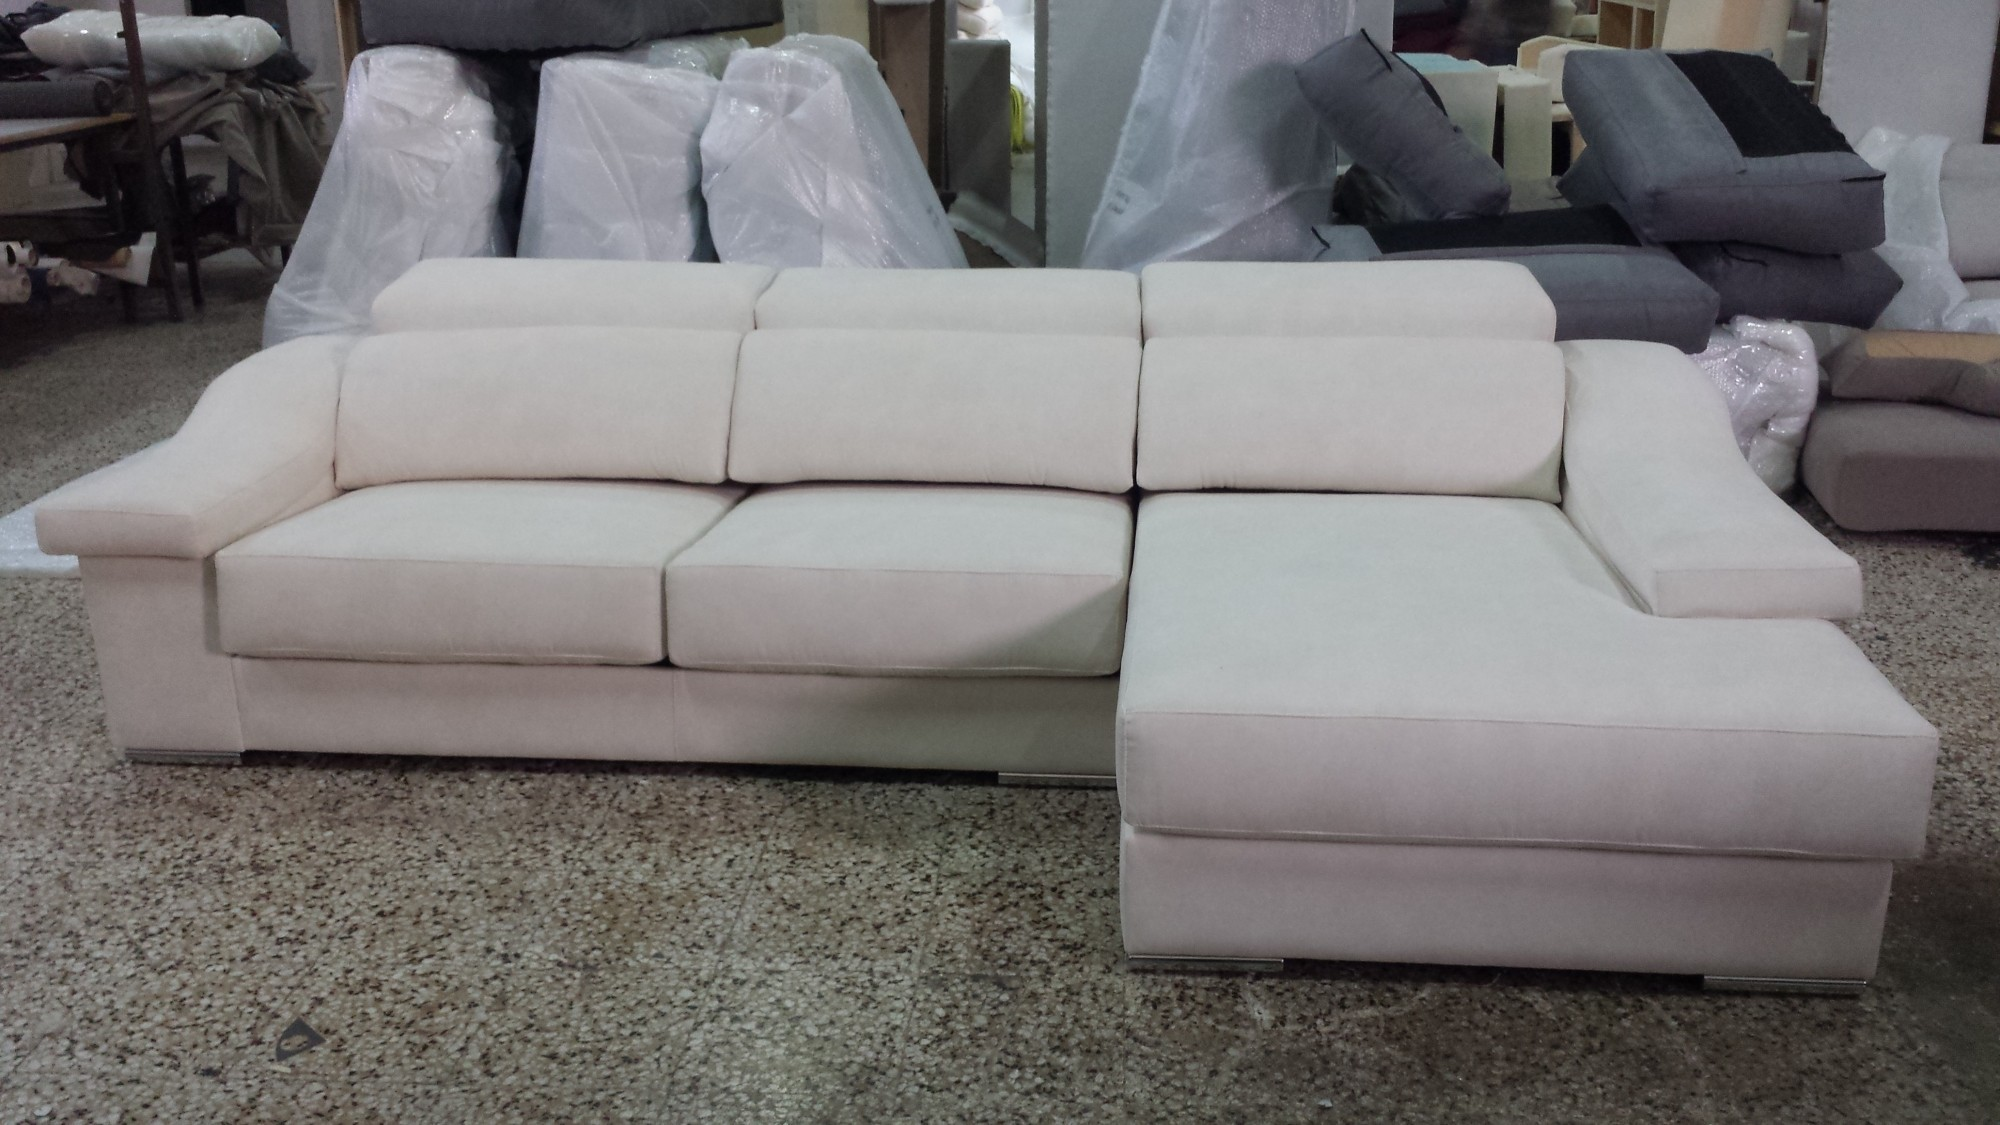 sofas chaise longue baratos barcelona